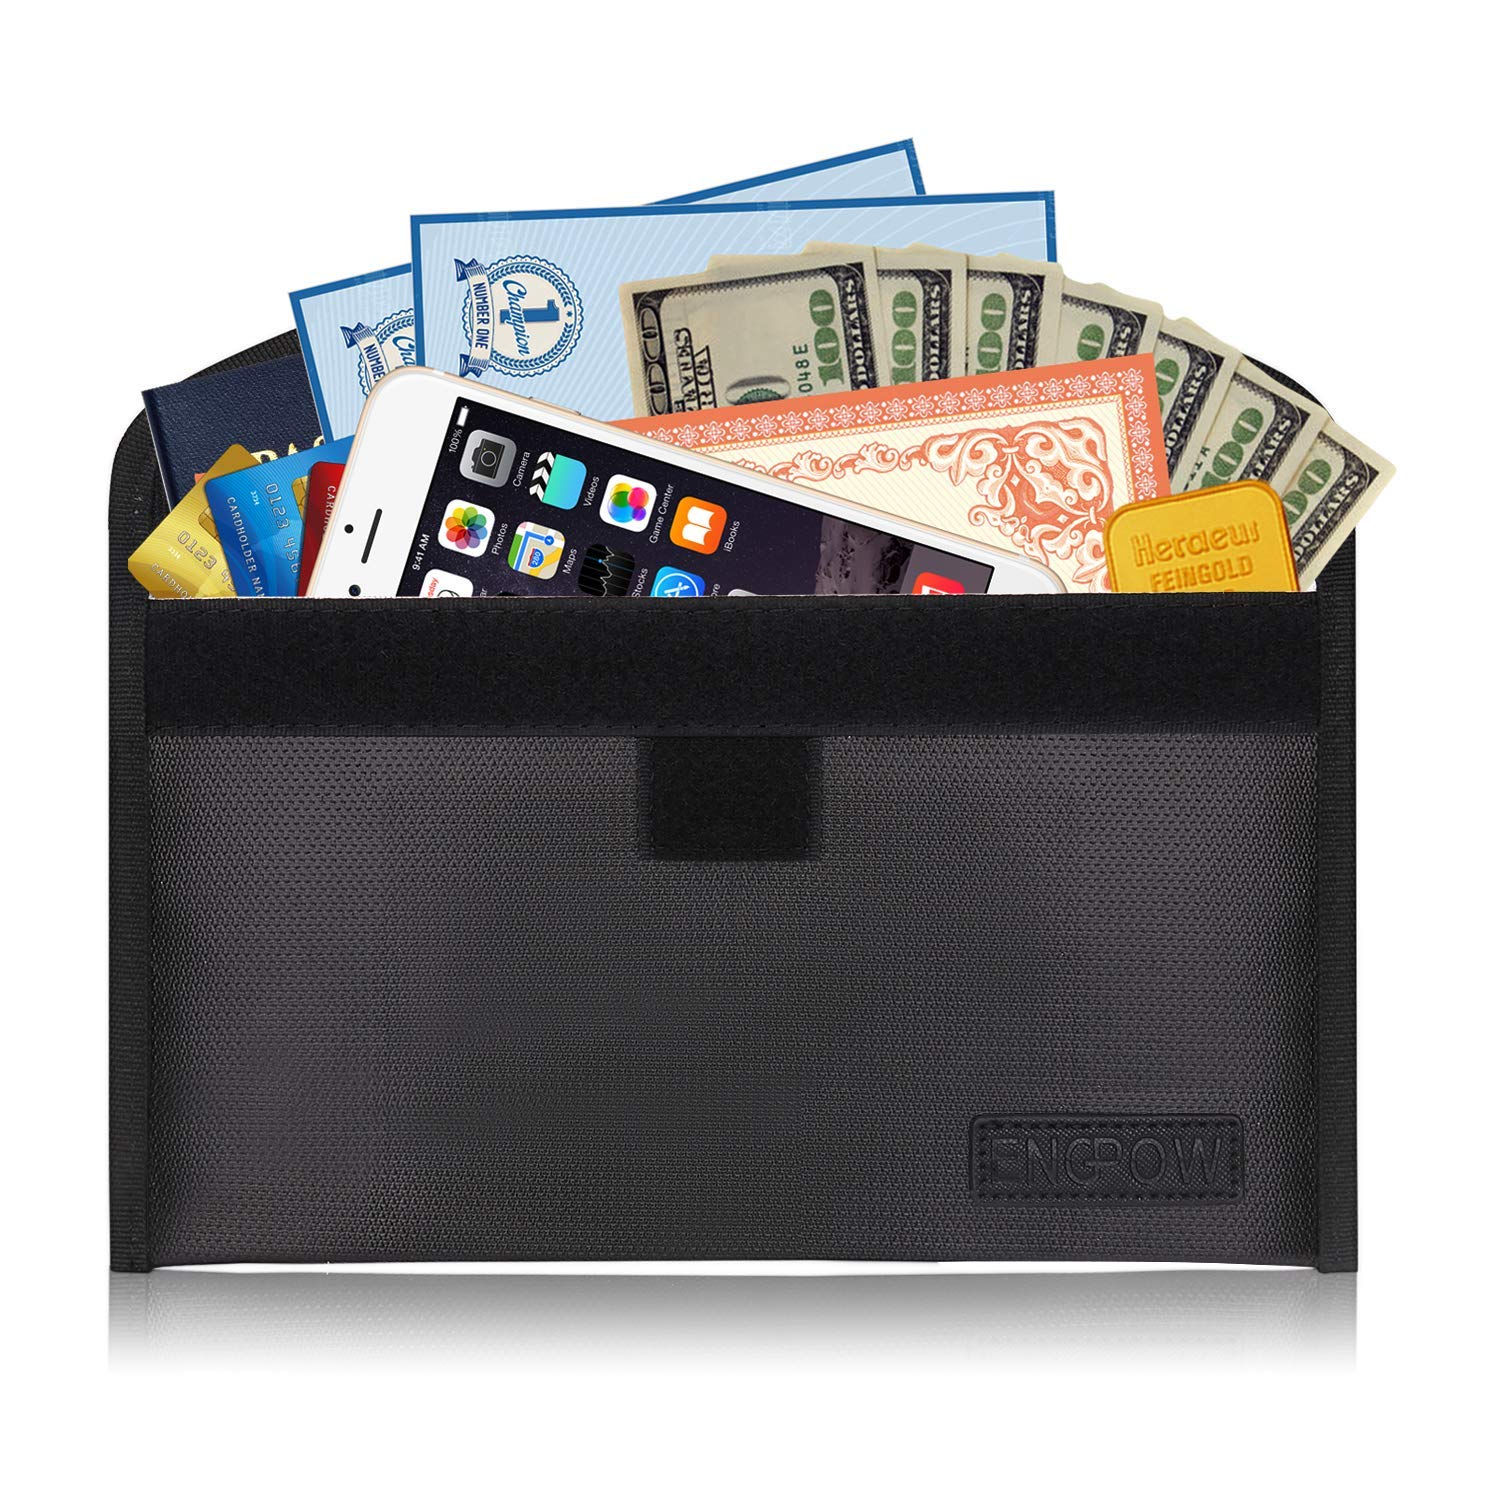 Fireproof Safe Bag for File Holder 10.2''x6''Non-Itchy Silicone Coated Money Bag for Cash, Passport,Jewelry, Important Documents,7-8 Inch Sleeve Bag Black (Black 2)